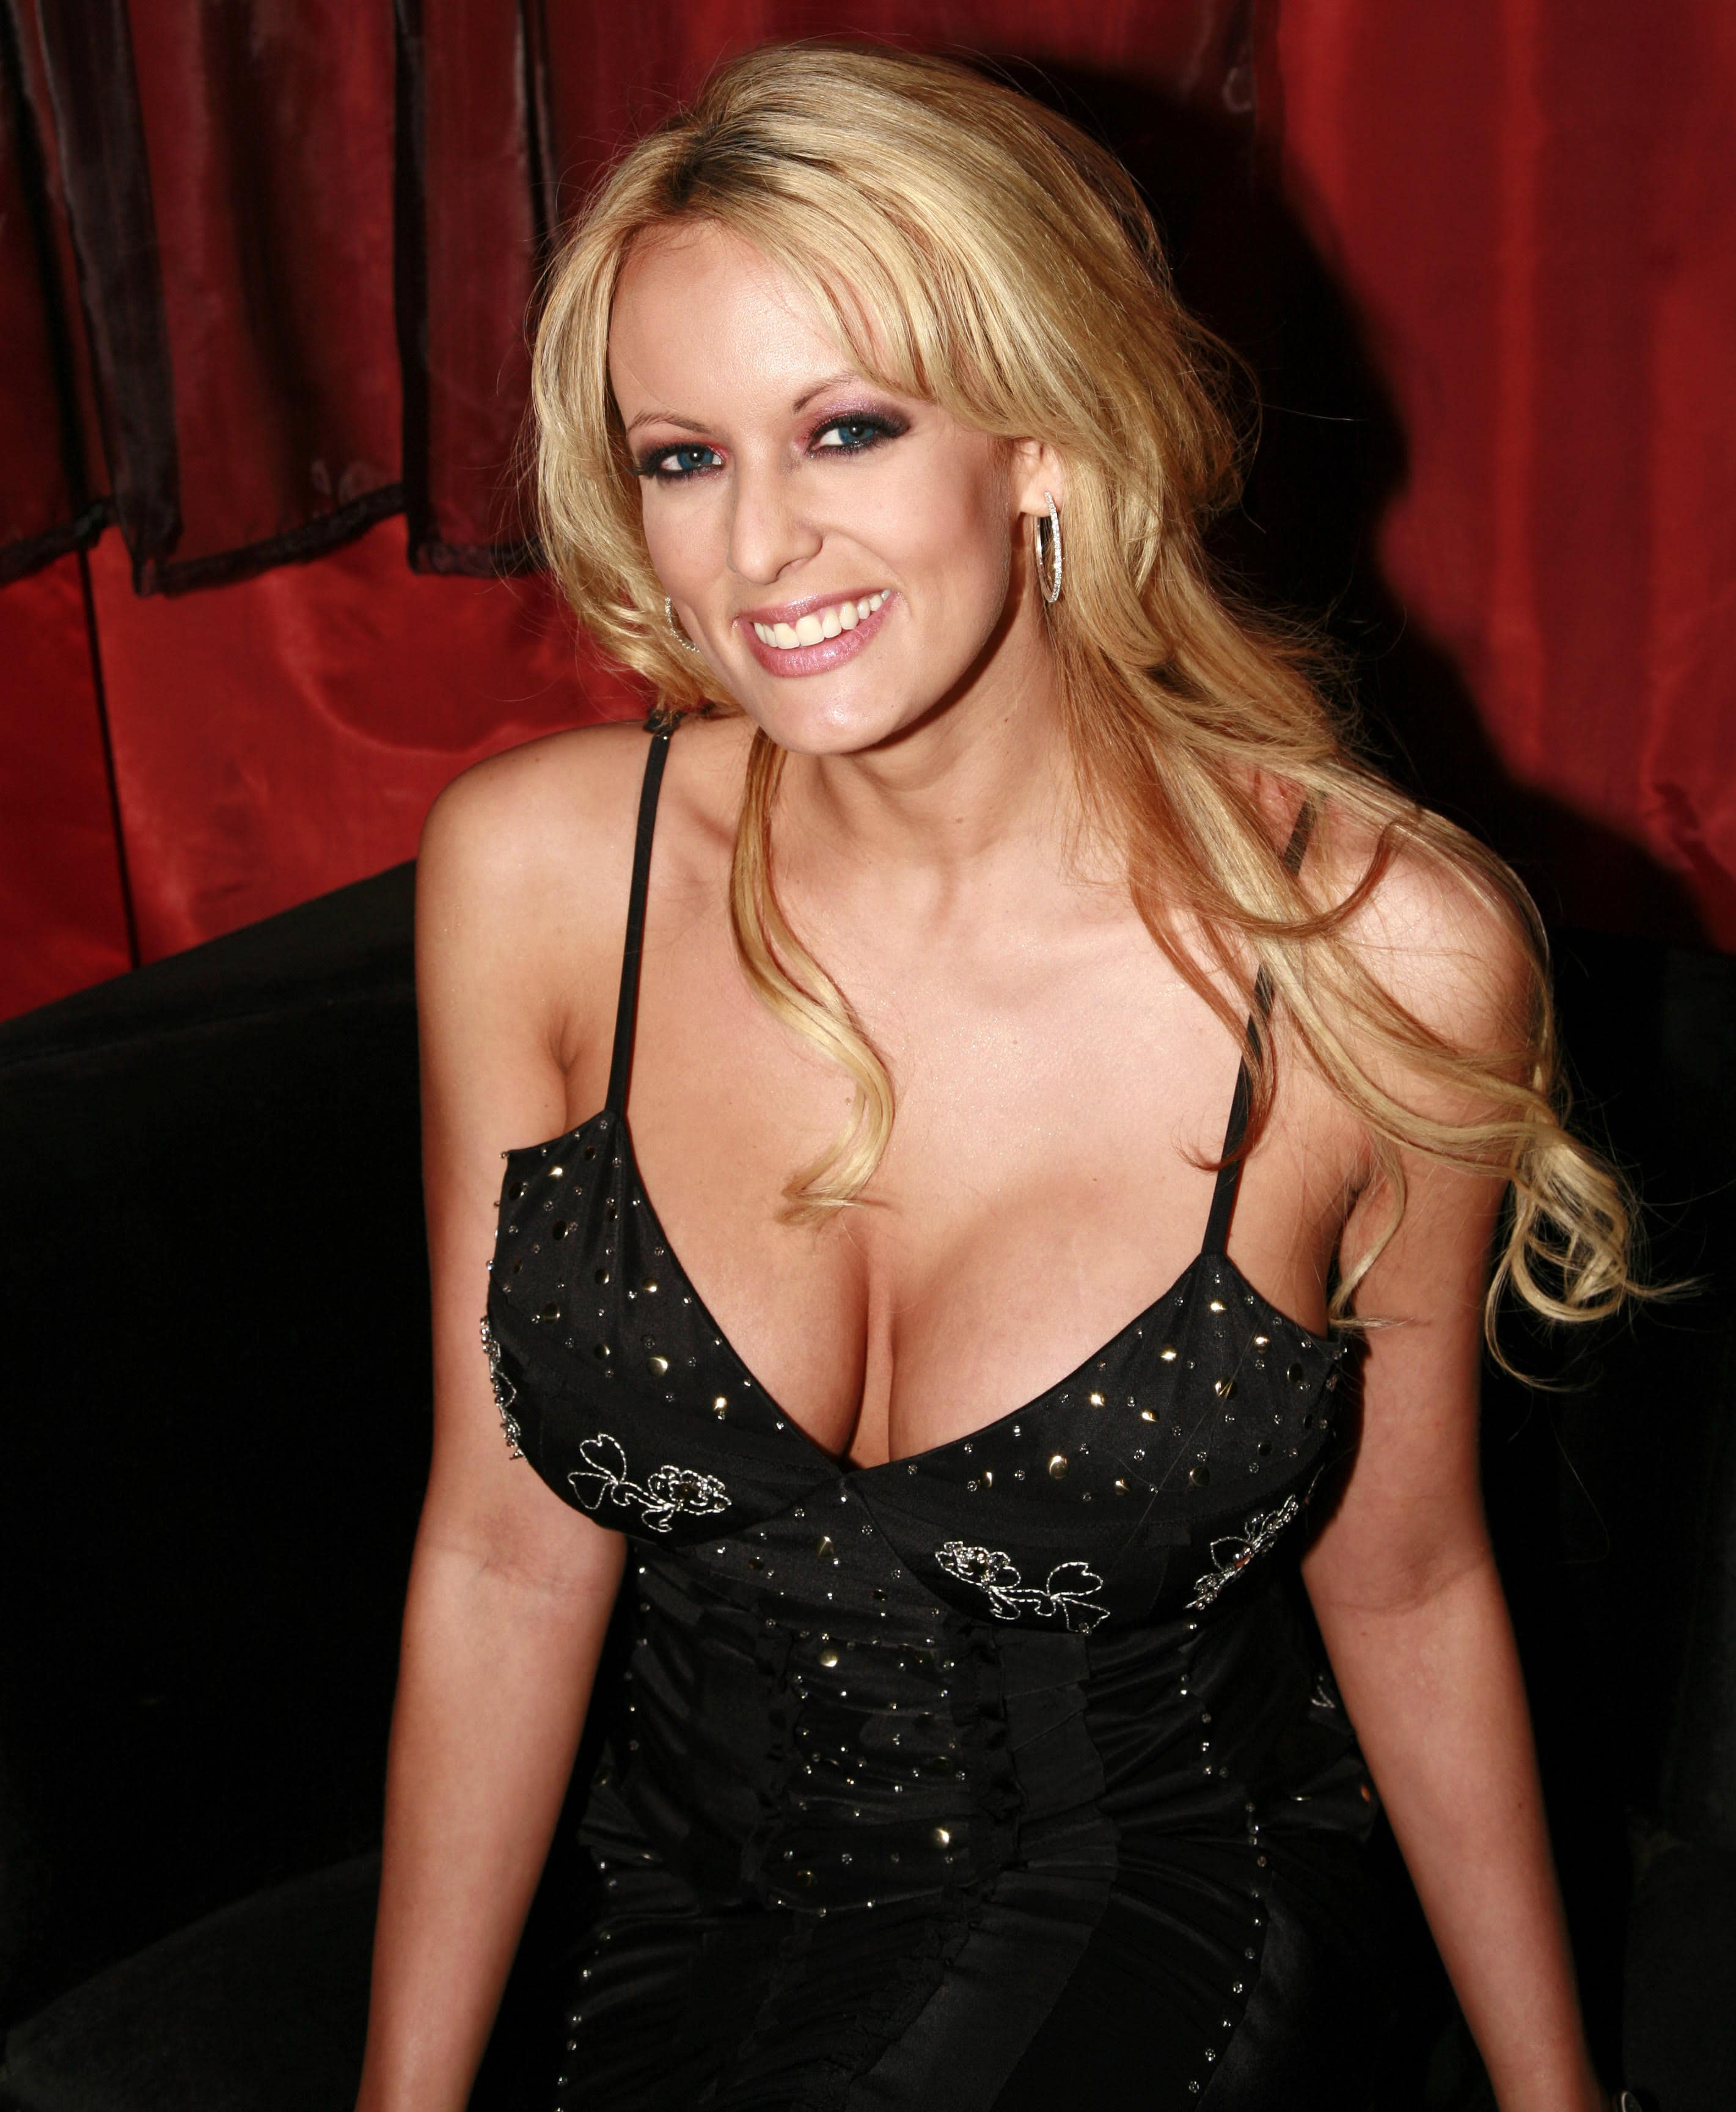 Stormy Daniels Smile